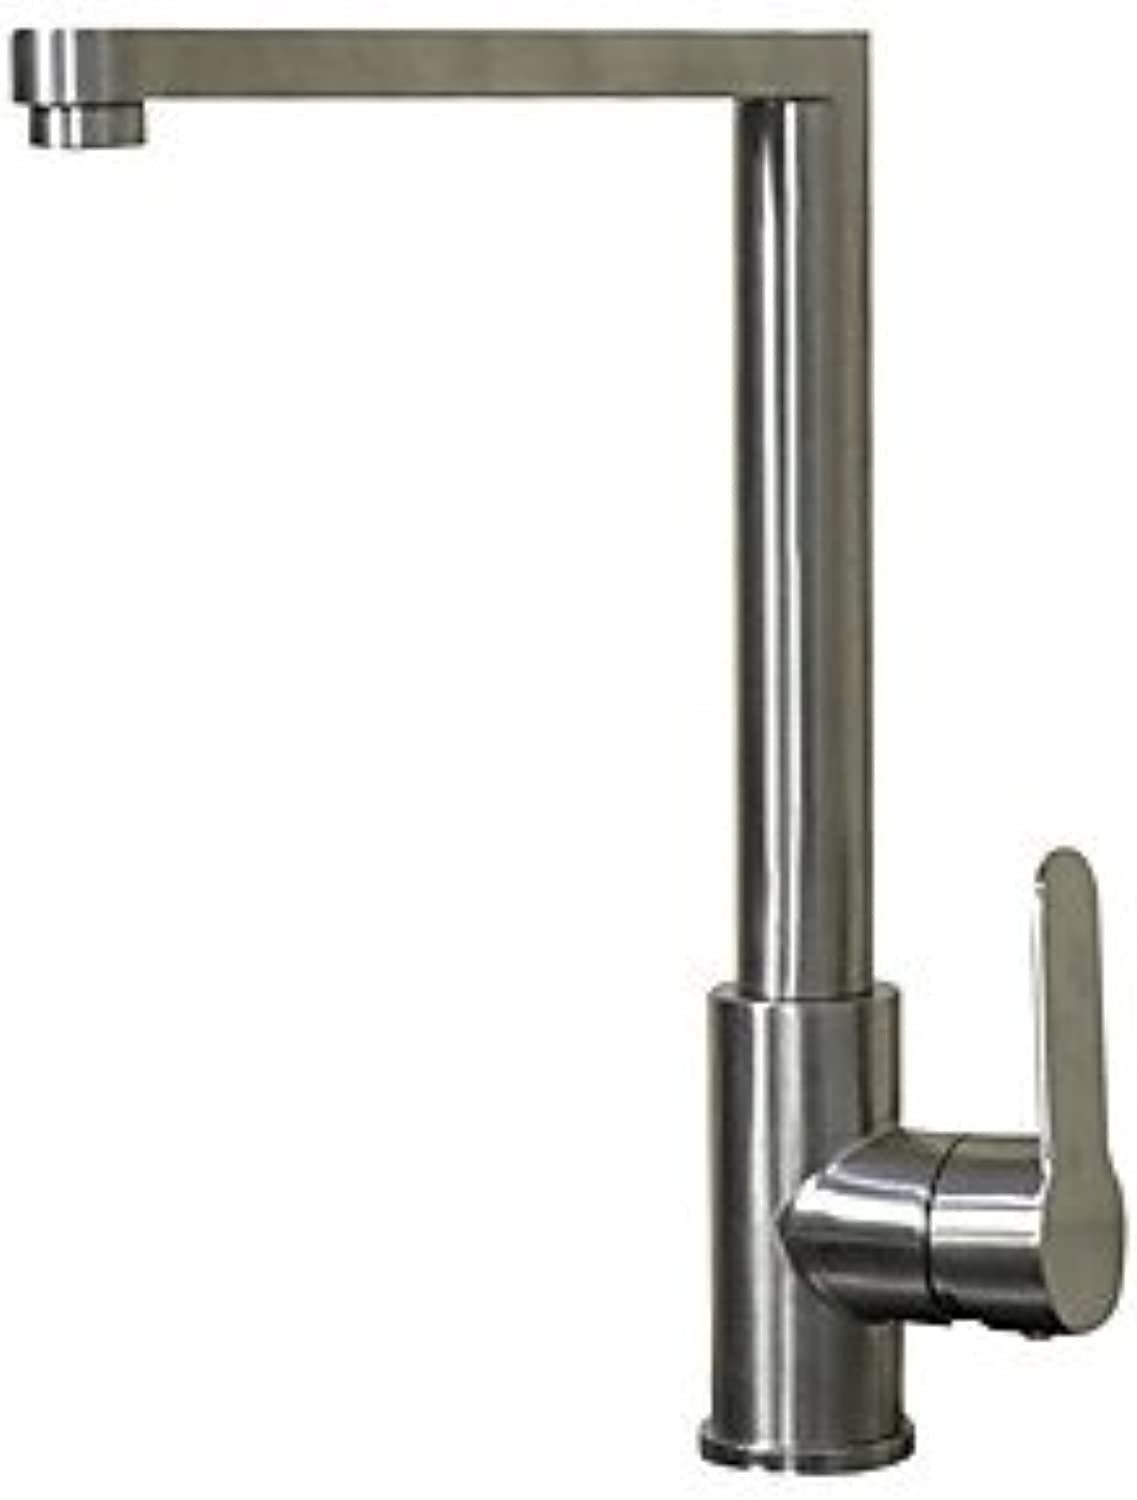 TSAR003 Contemporary Standard Spout Centerset redatable With Ceramic Valve Single Handle One Hole For Nickel Brushed , Kitchen Faucet